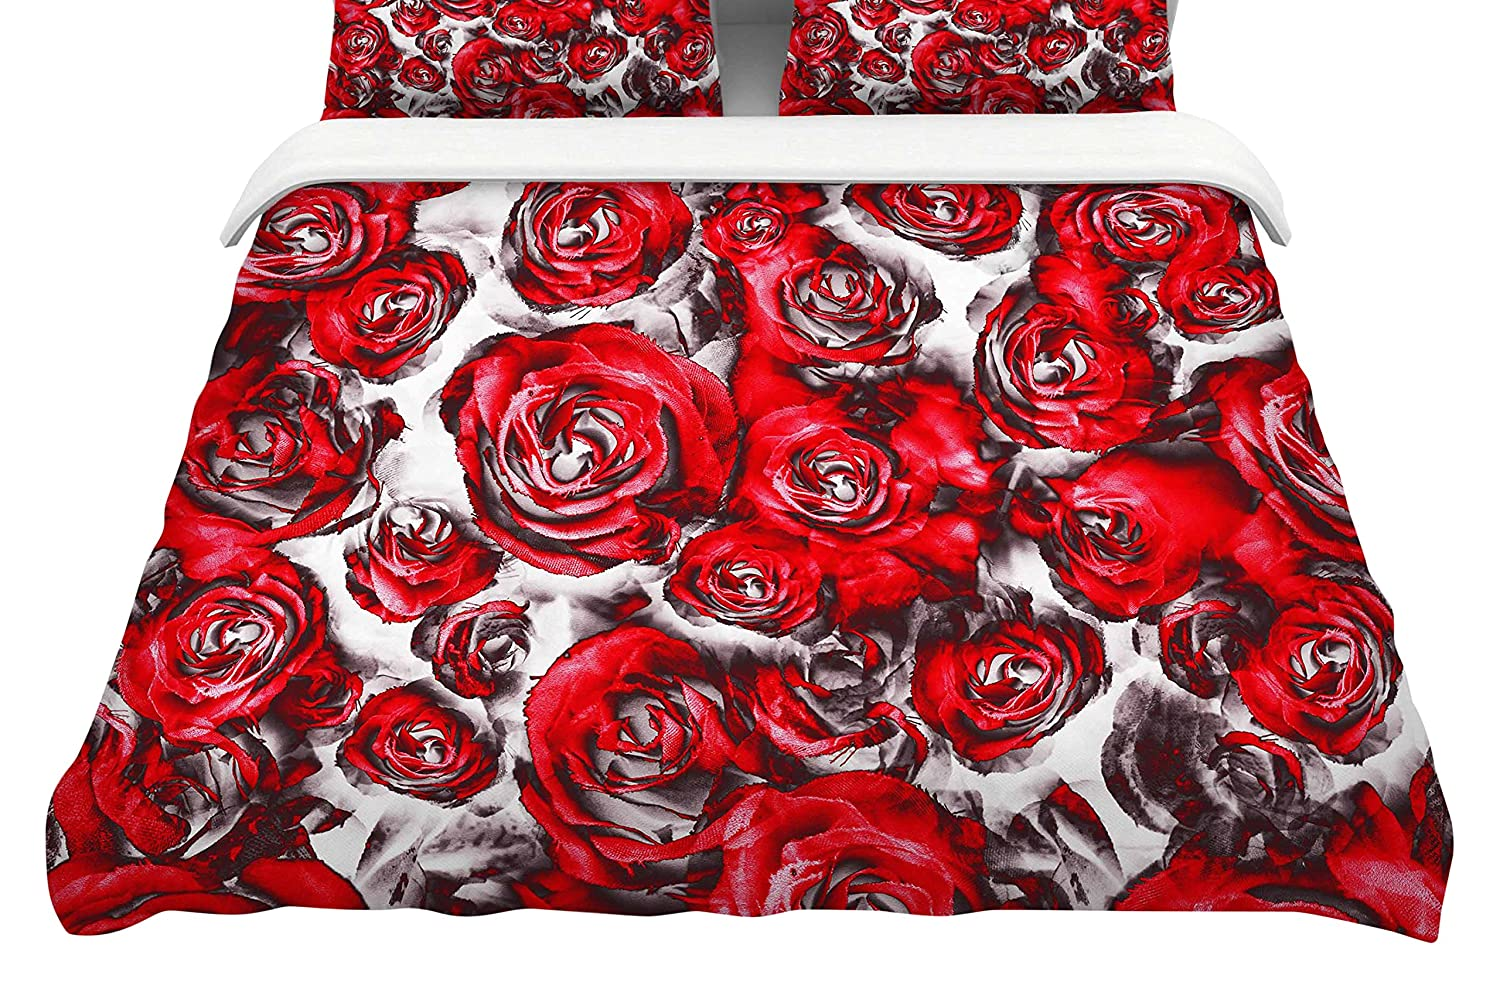 104 x 88 104 x 88 Kess InHouse Dawid ROC Red Roses Floral Abstract King Cotton Duvet Cover